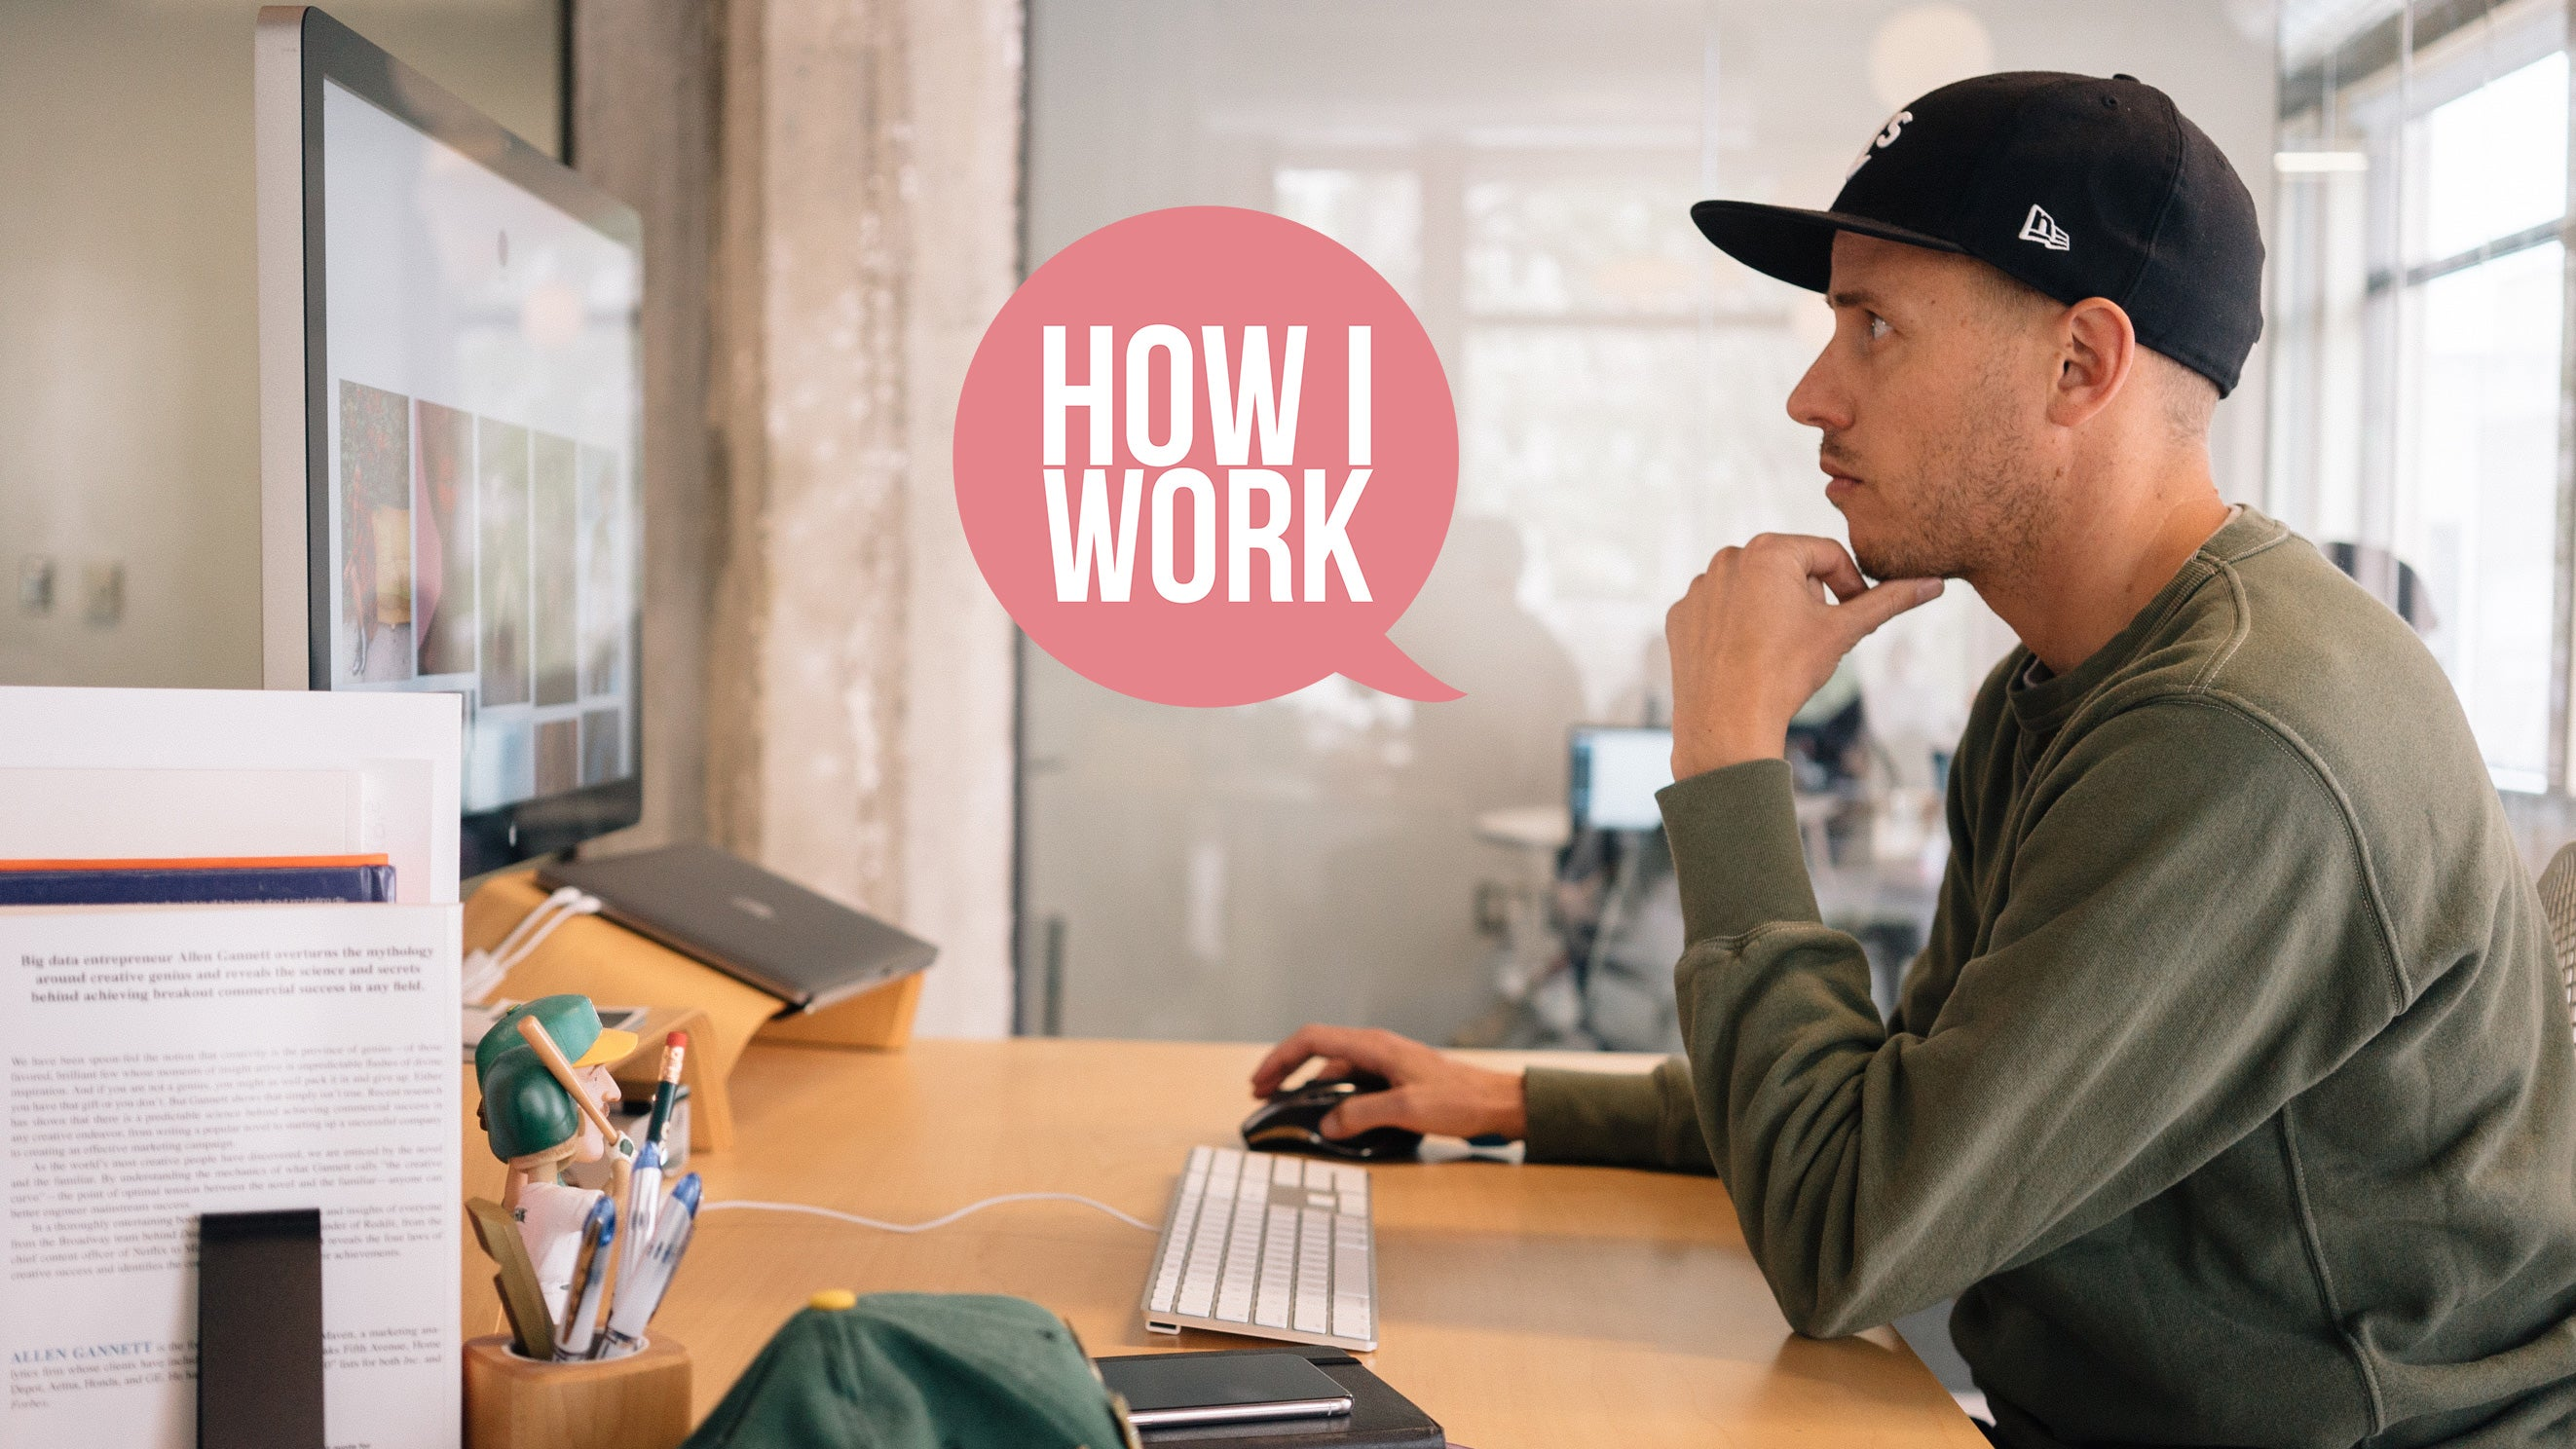 I'm VSCO Co-founder Joel Flory, And This Is How I Work